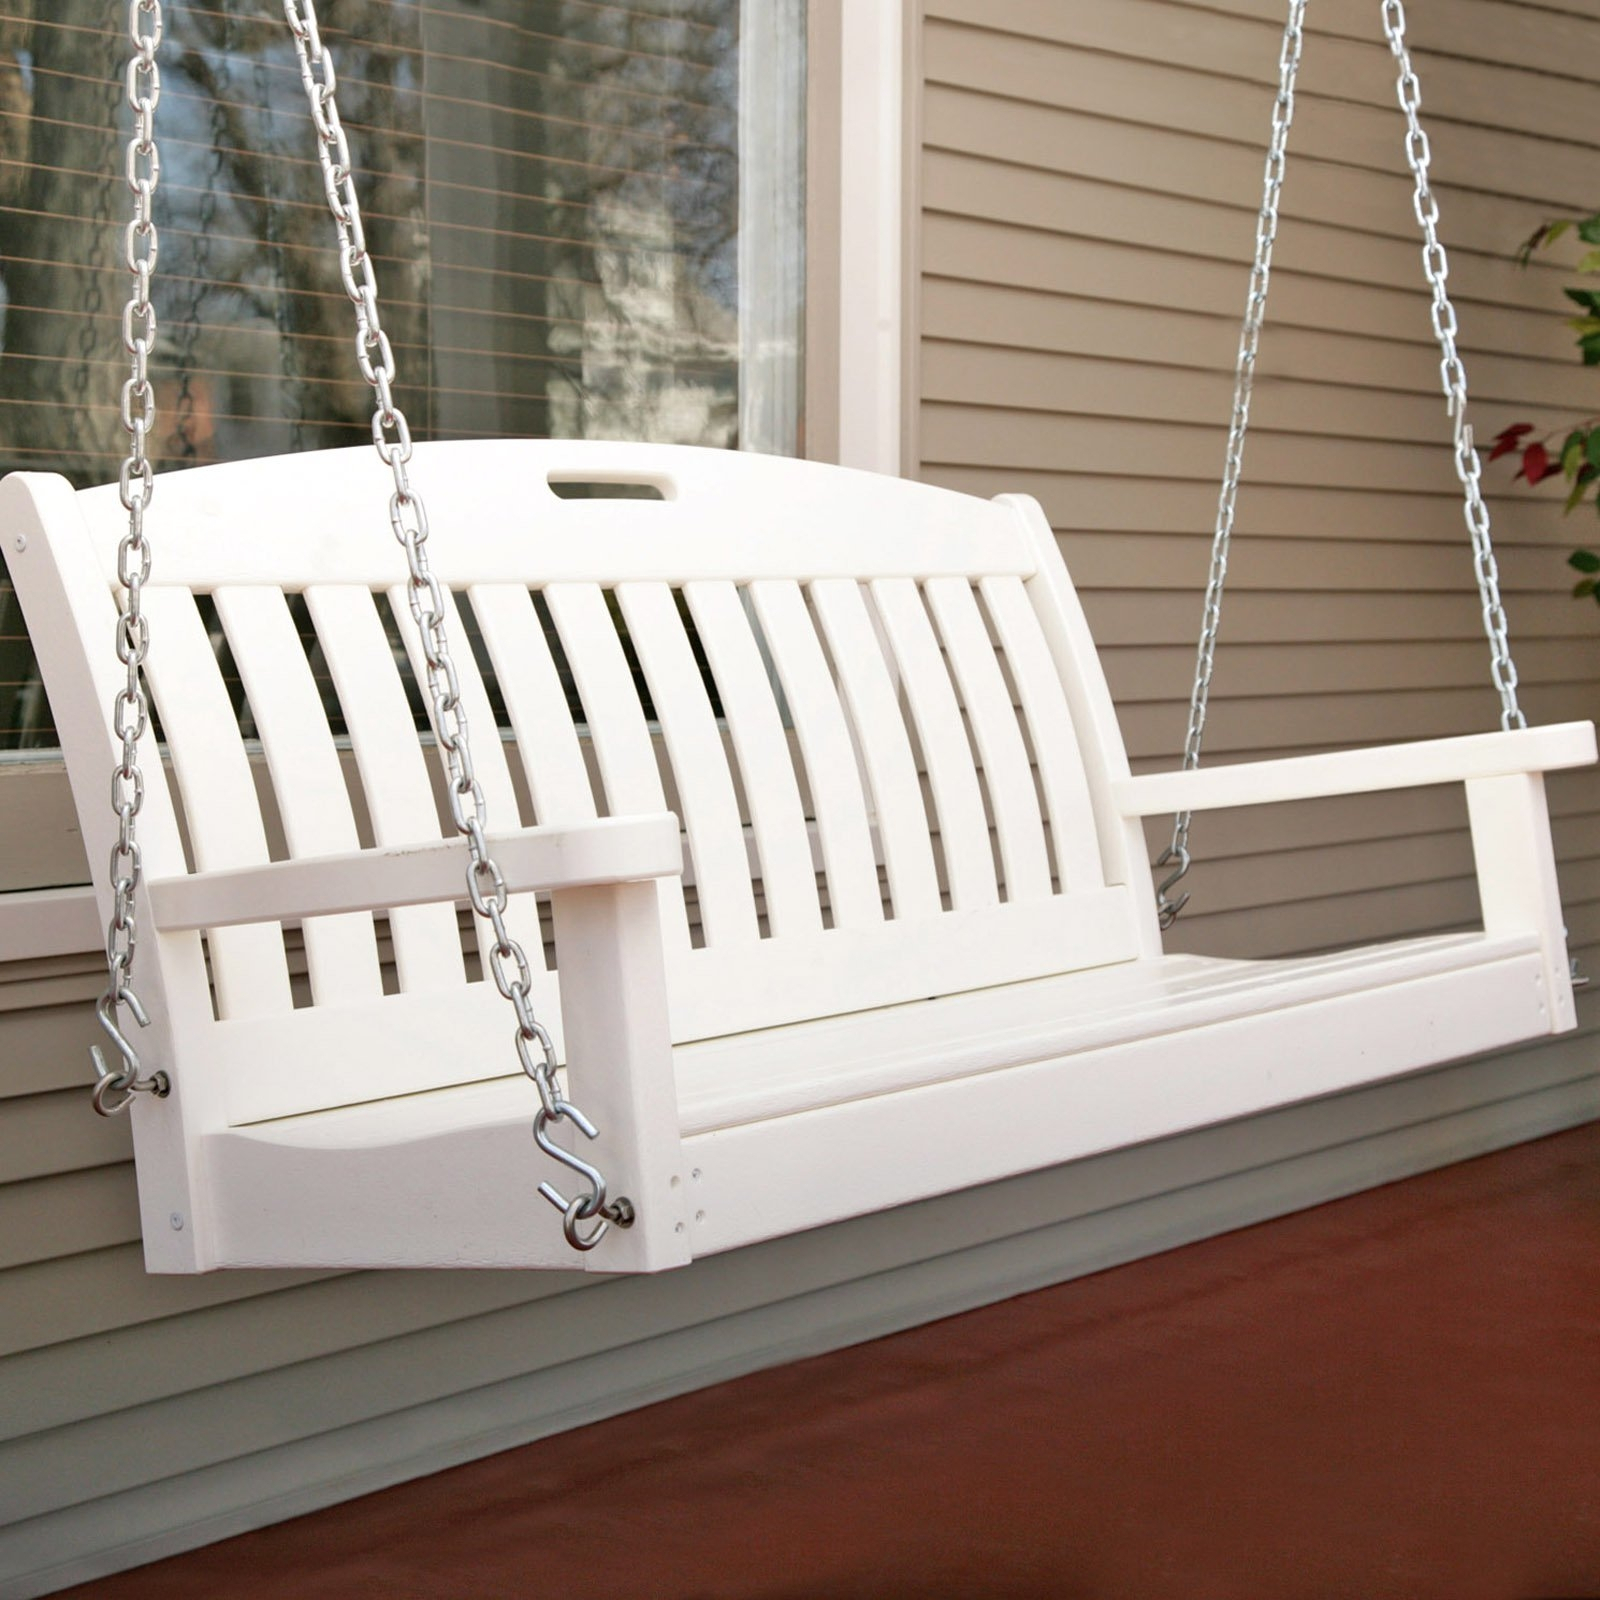 Heavy Duty Porch Swing Chain Kit Within Porch Swings With Chain (View 16 of 25)